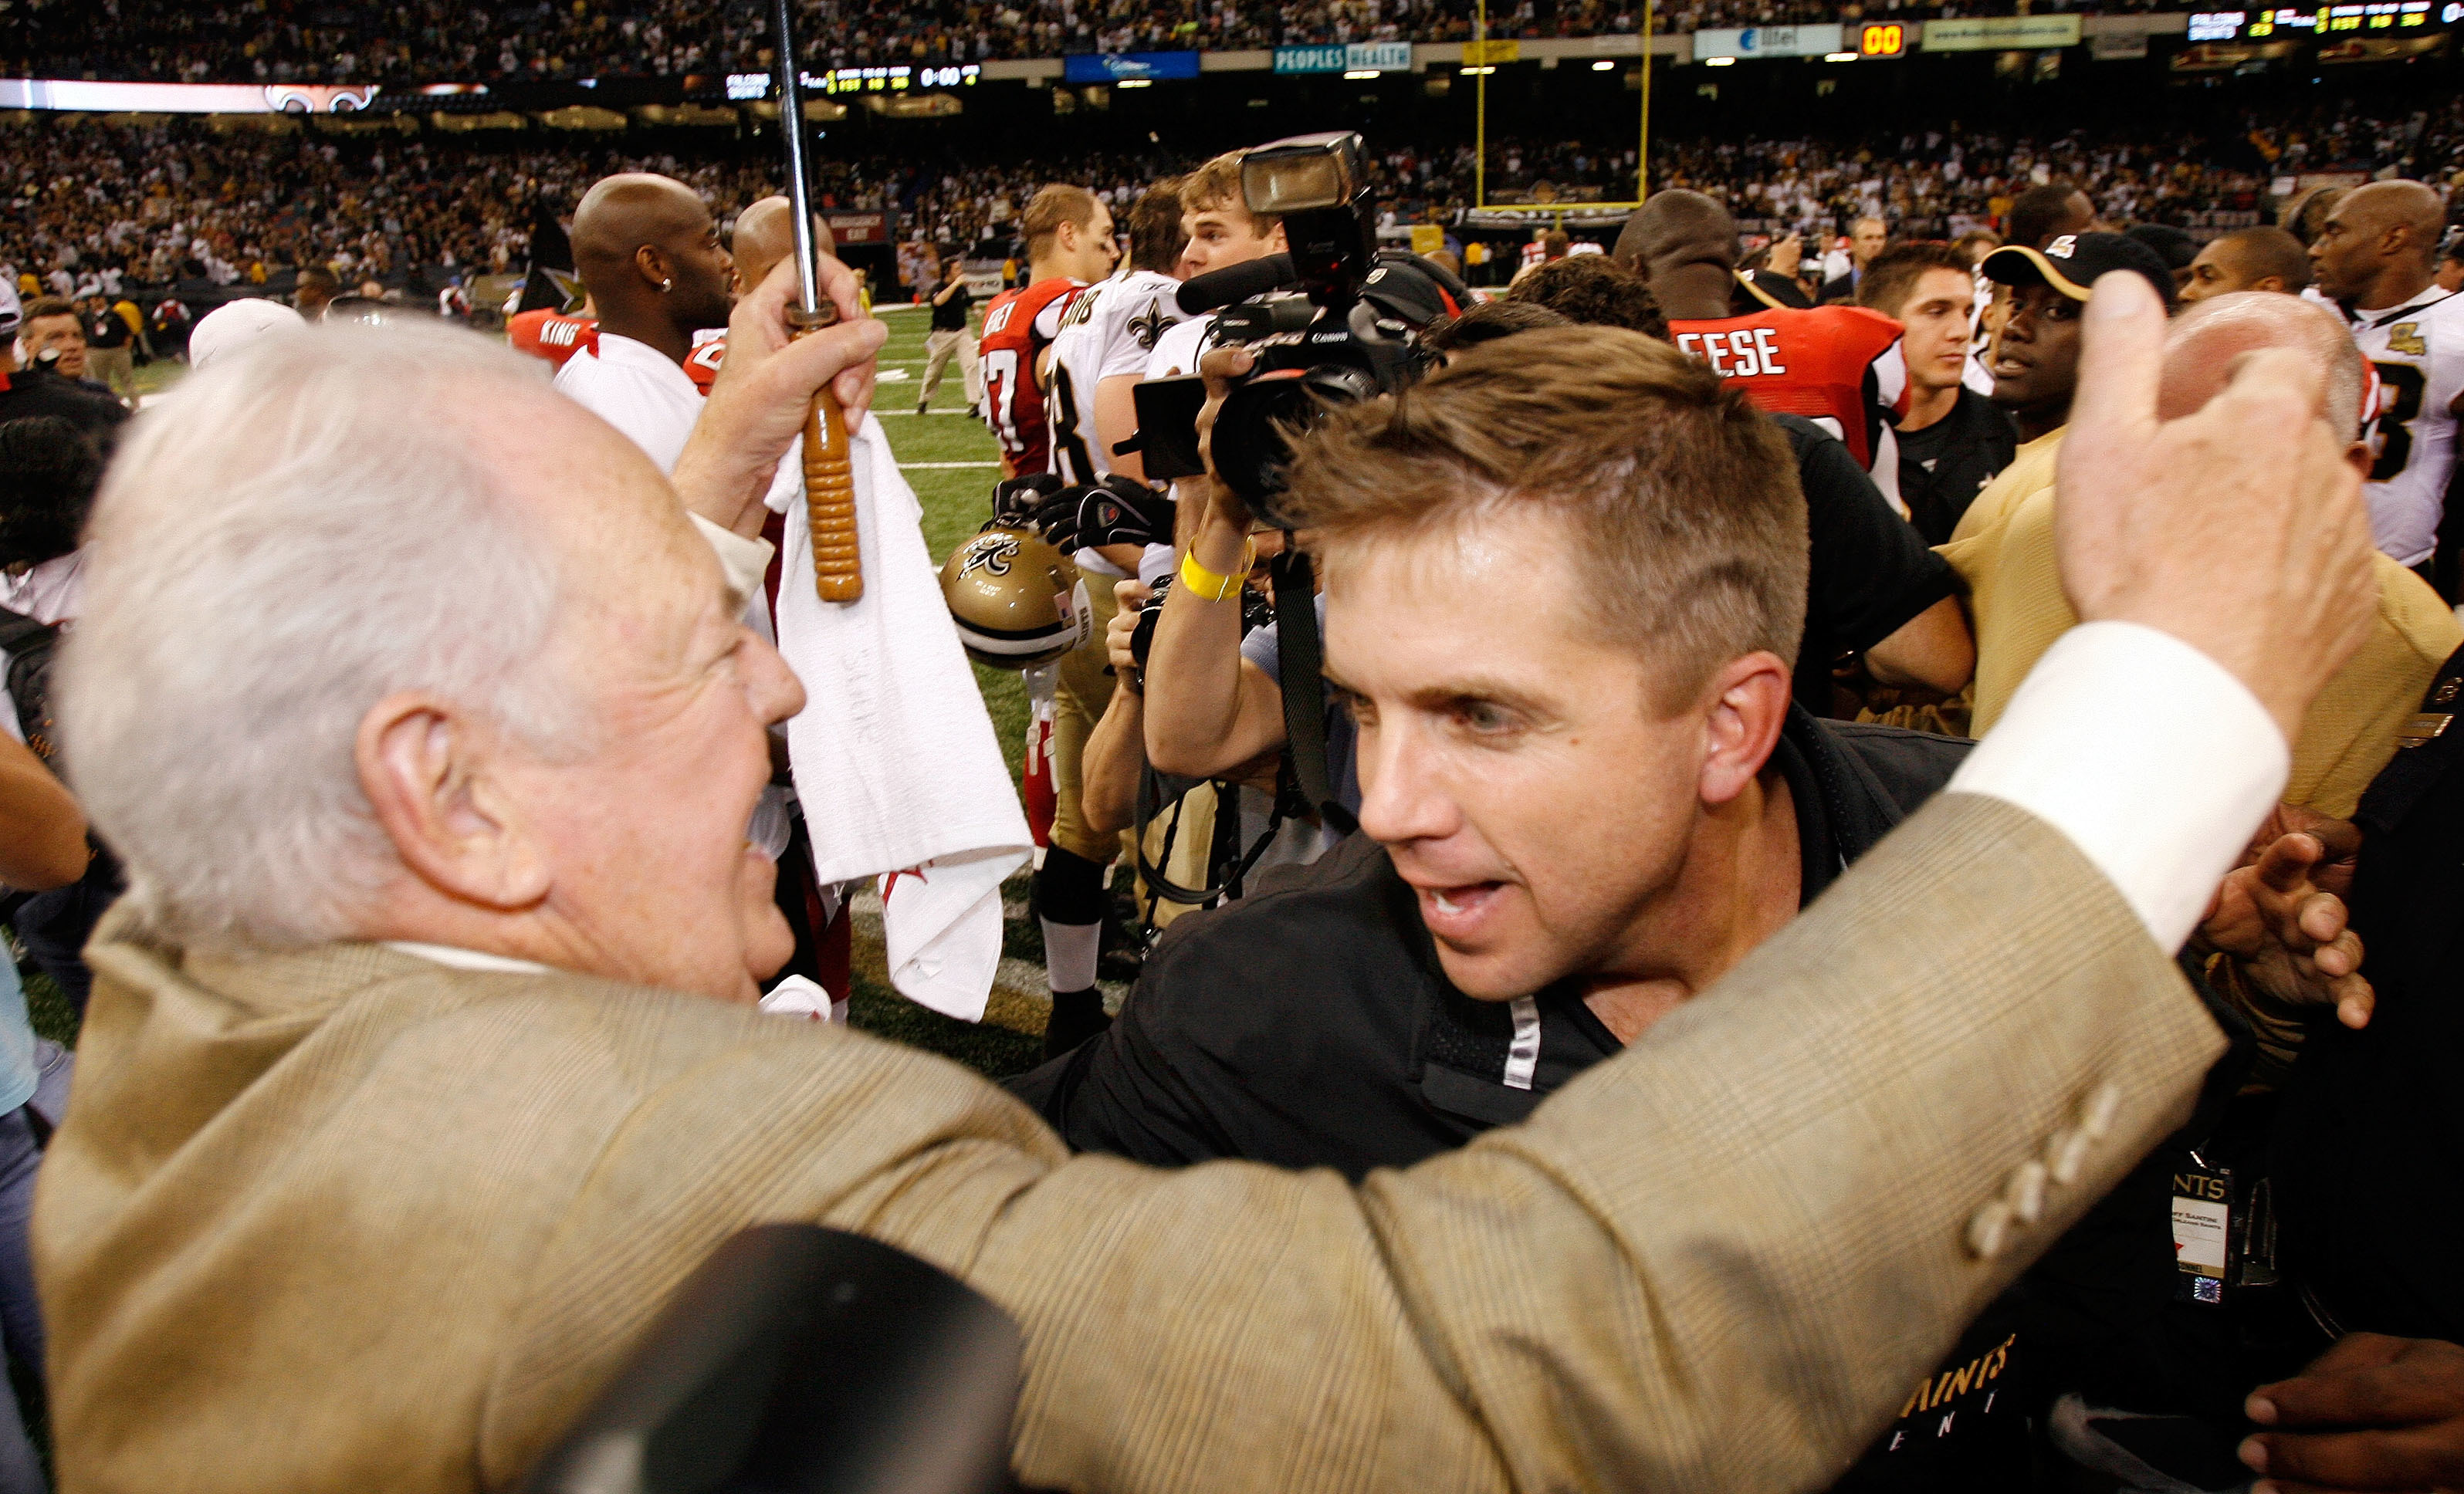 File-This Sept. 25, 2006, file photo shows New Orleans Saints owner Tom Benson, left, hugging coach Sean Payton after their football game with Atlanta Falcons at the newly re-opened Louisiana Superdome in New Orleans.  Payton sees Monday nights matchup wi